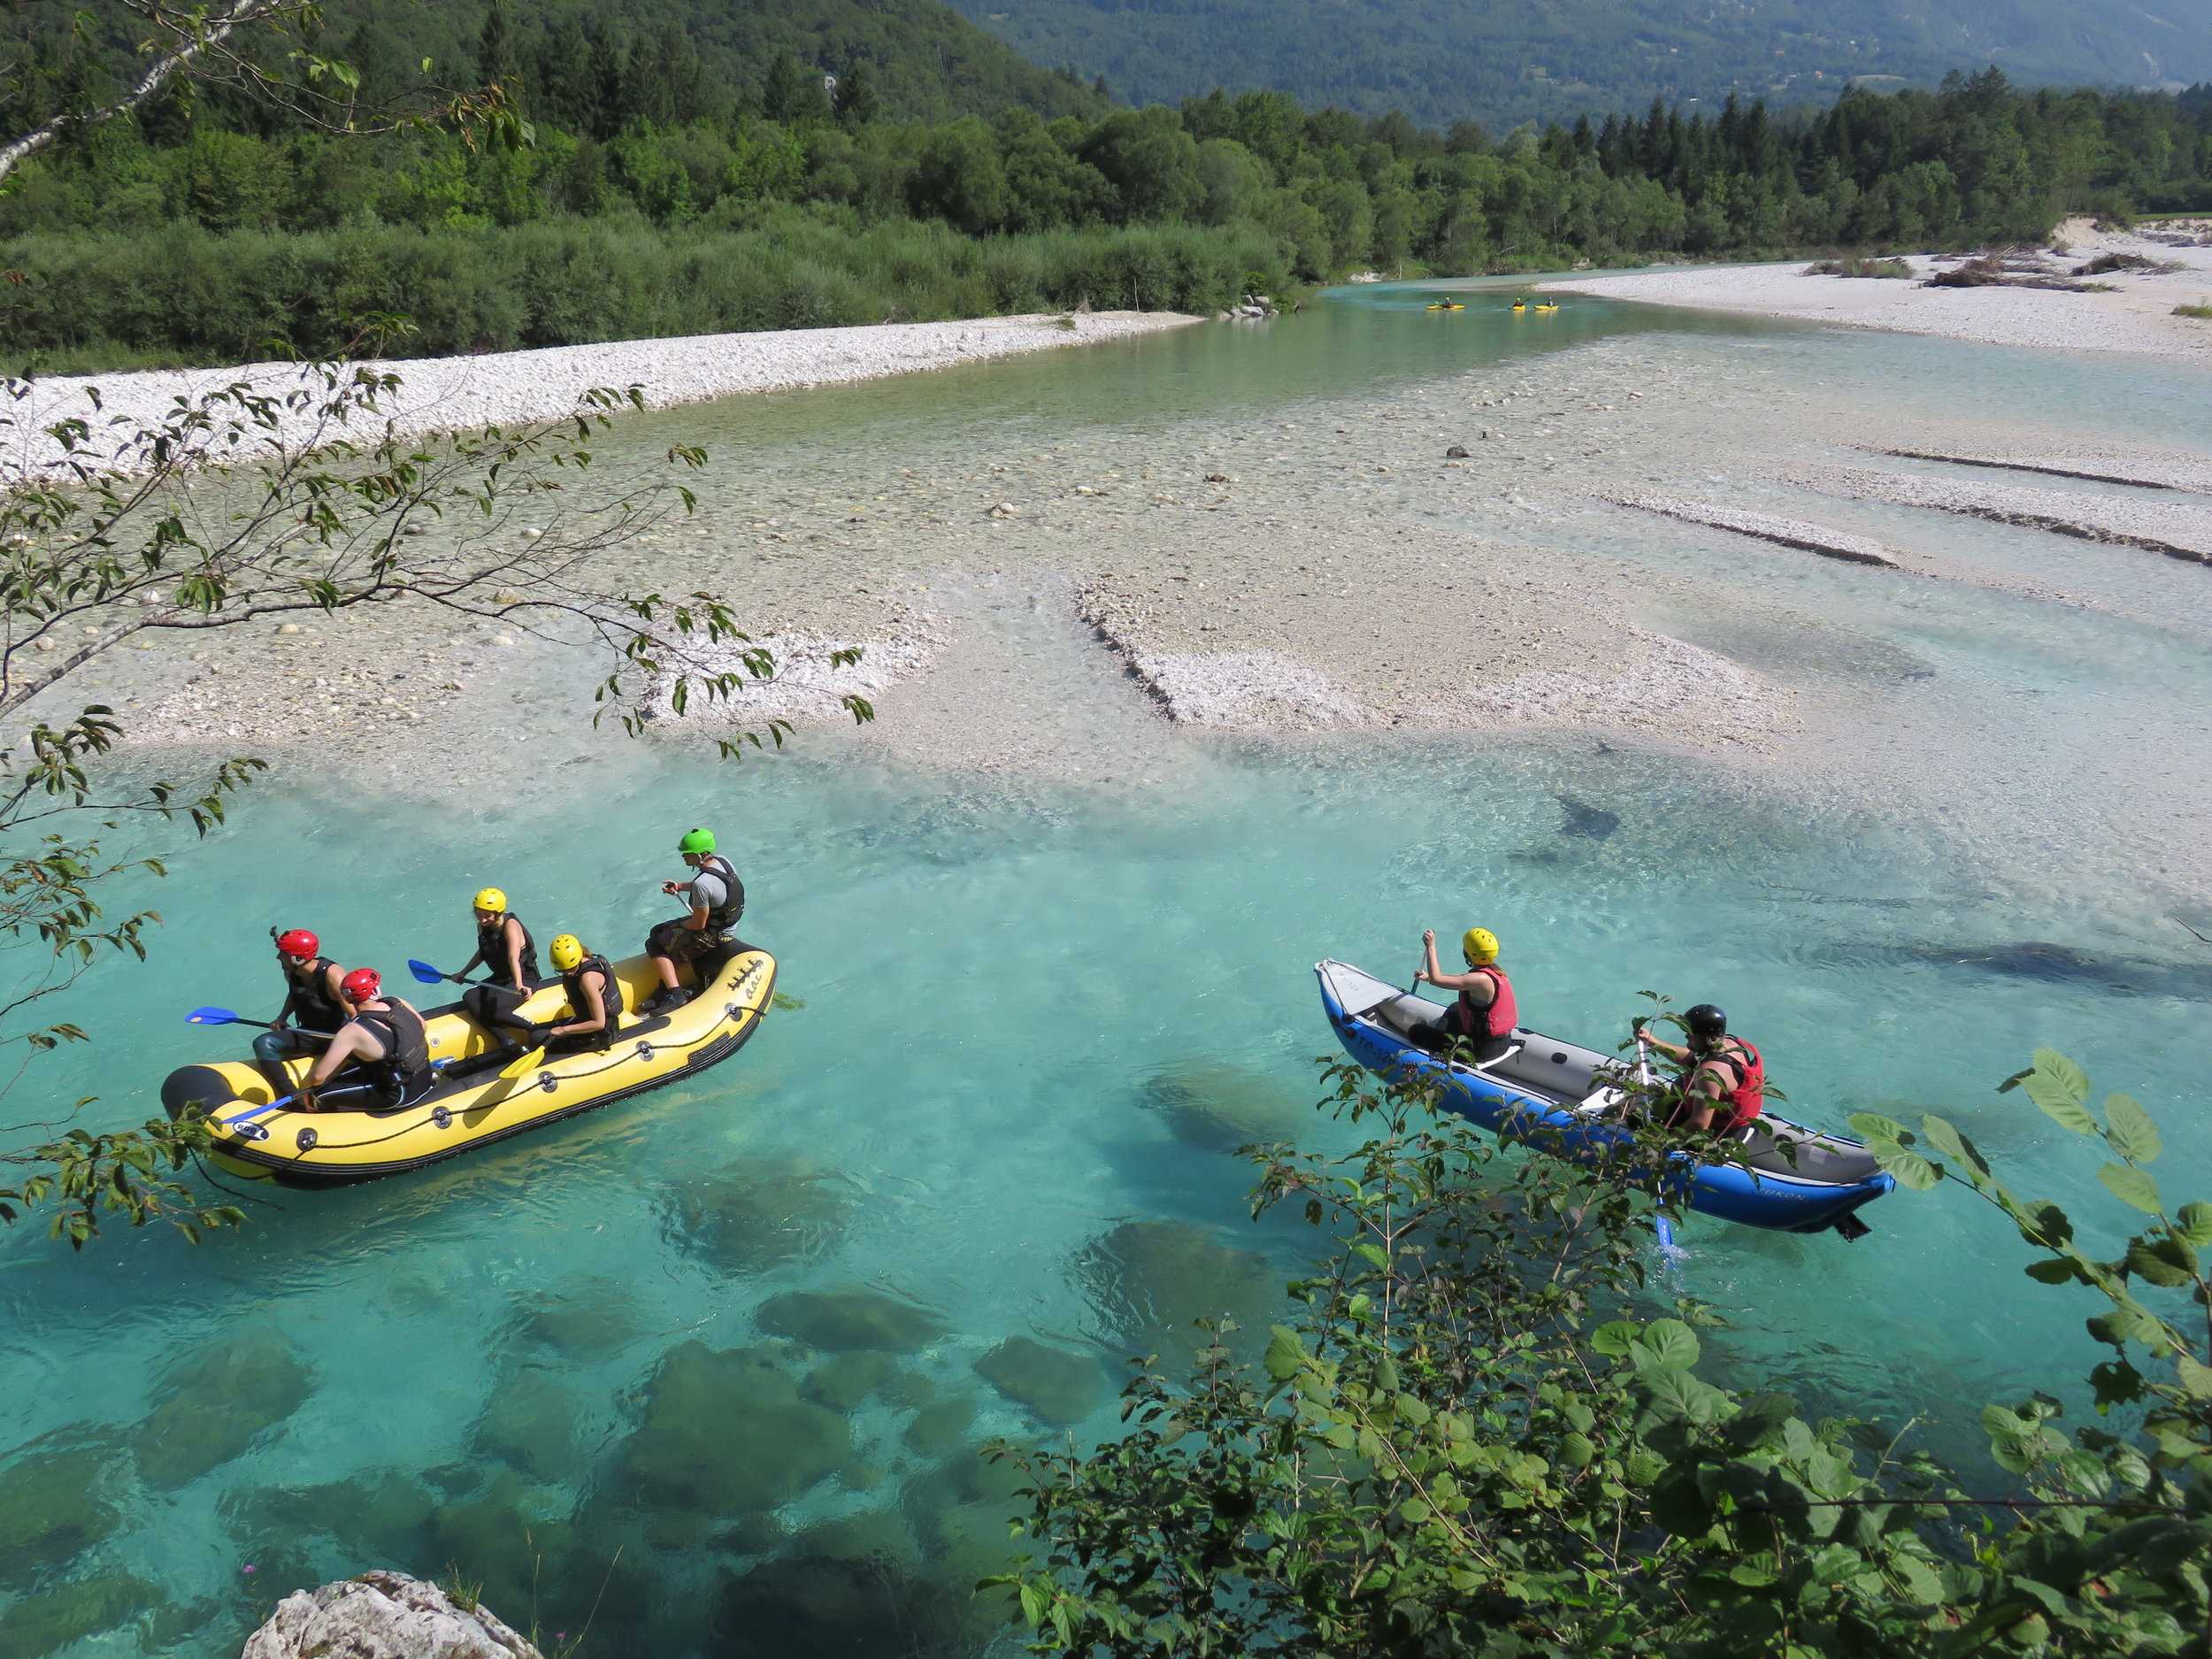 We love white water rafting, but we'd rather do it on our terms, and not be forced into it.